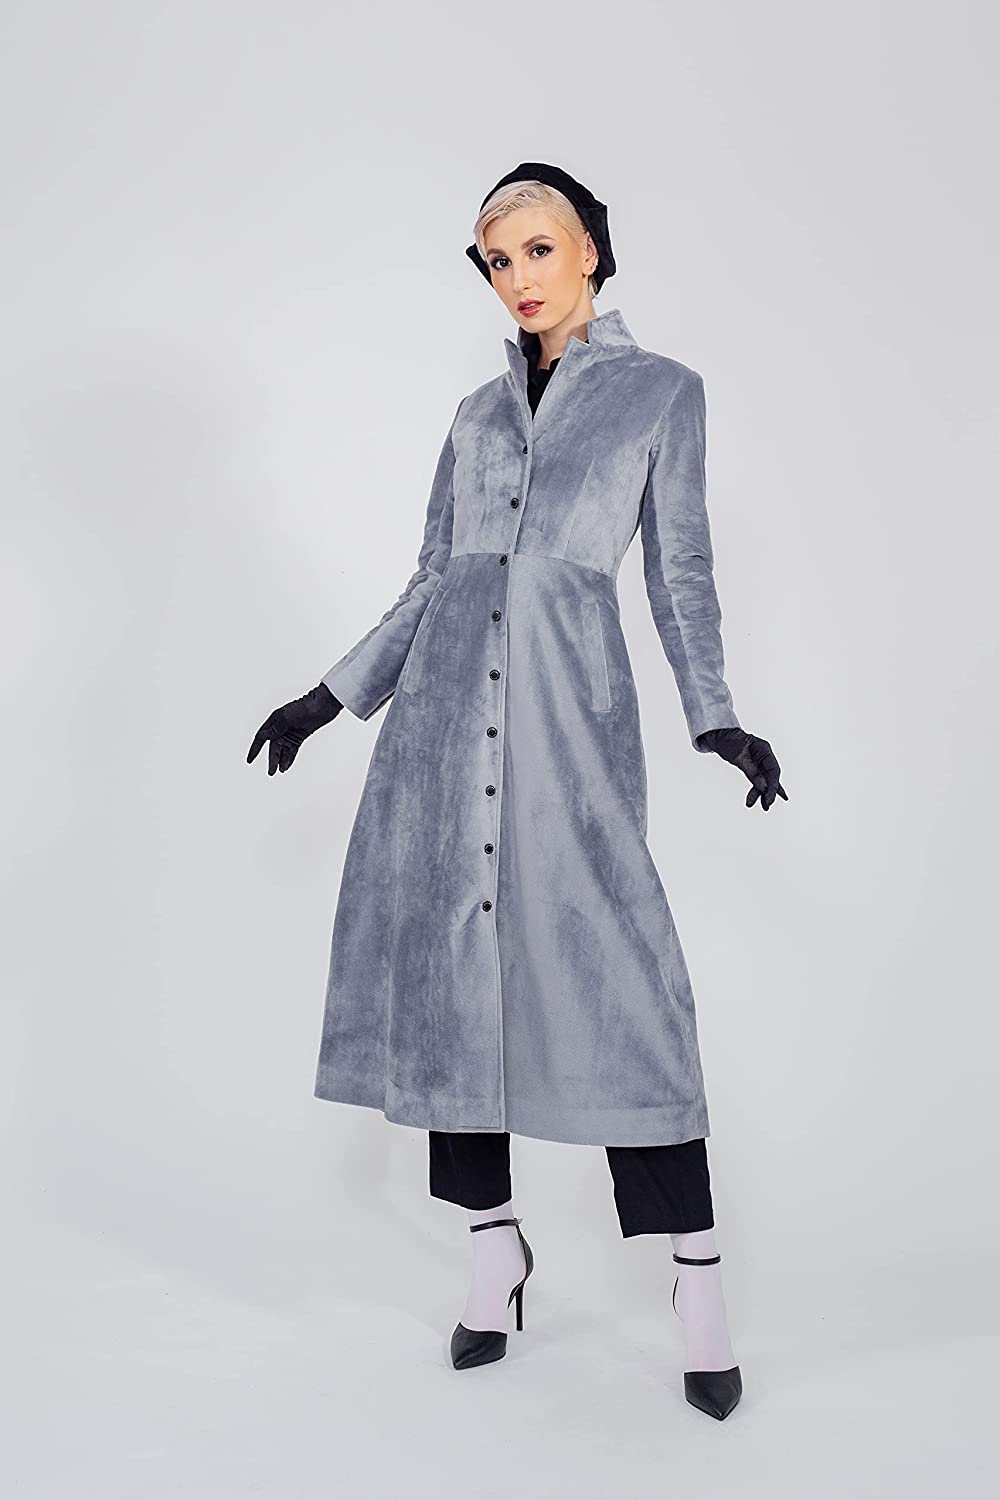 Click image to open Our shop most popular expanded view Trenc - Faux Women Quality inspection Fur Fashion